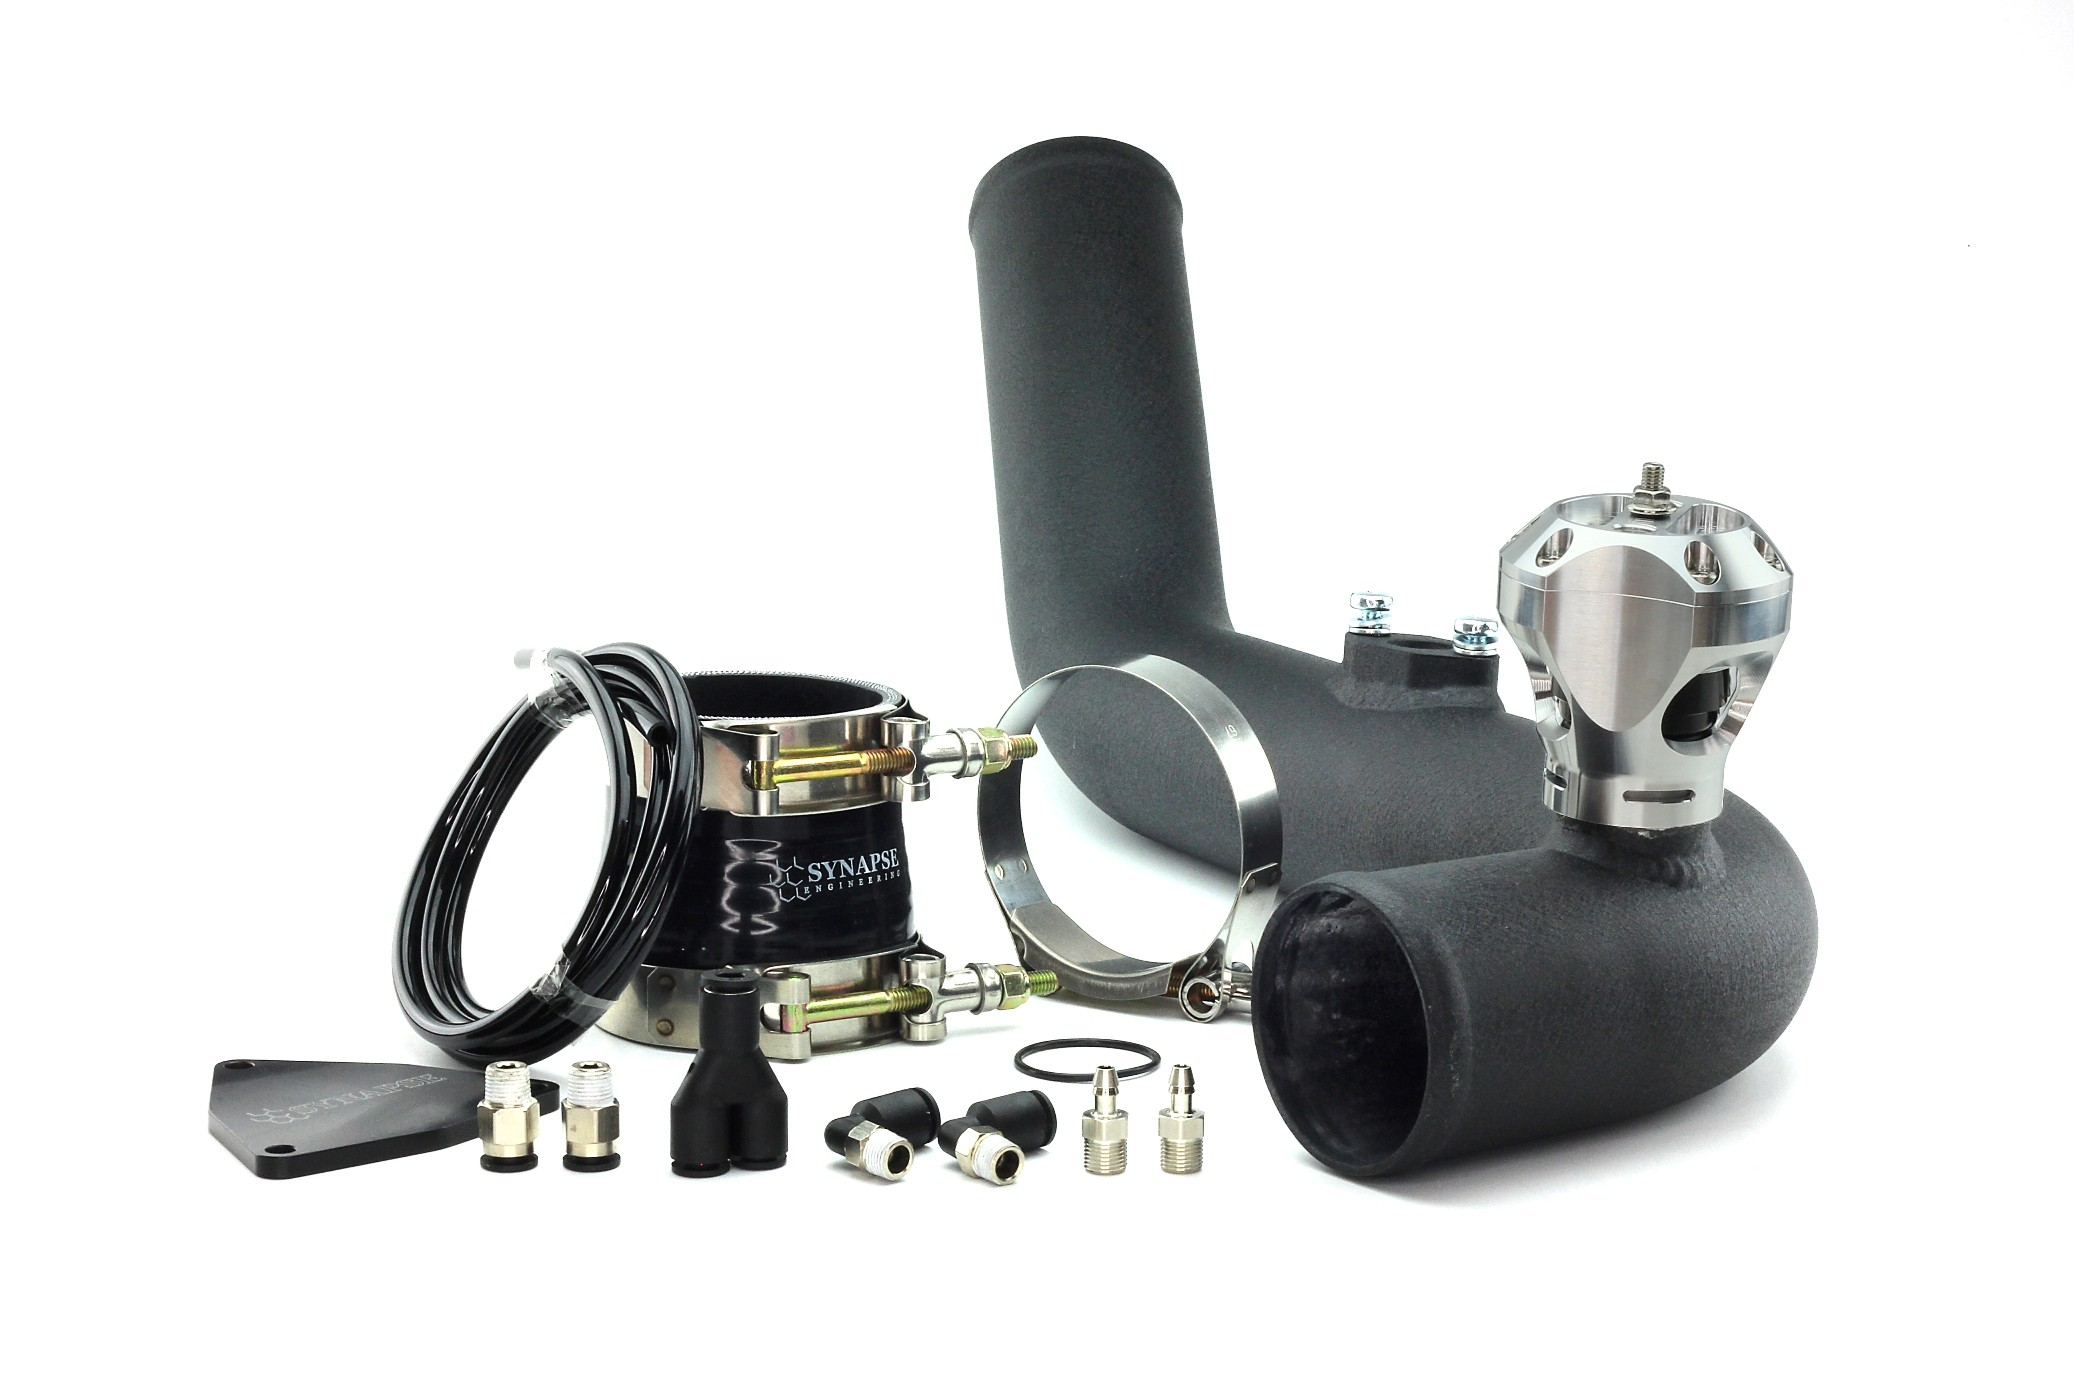 Hyundai Genesis 2.0T 2013 v2 R35 Radial Trident Kit with Black Powdercoat Charge Pipe - Silver/Black BOV